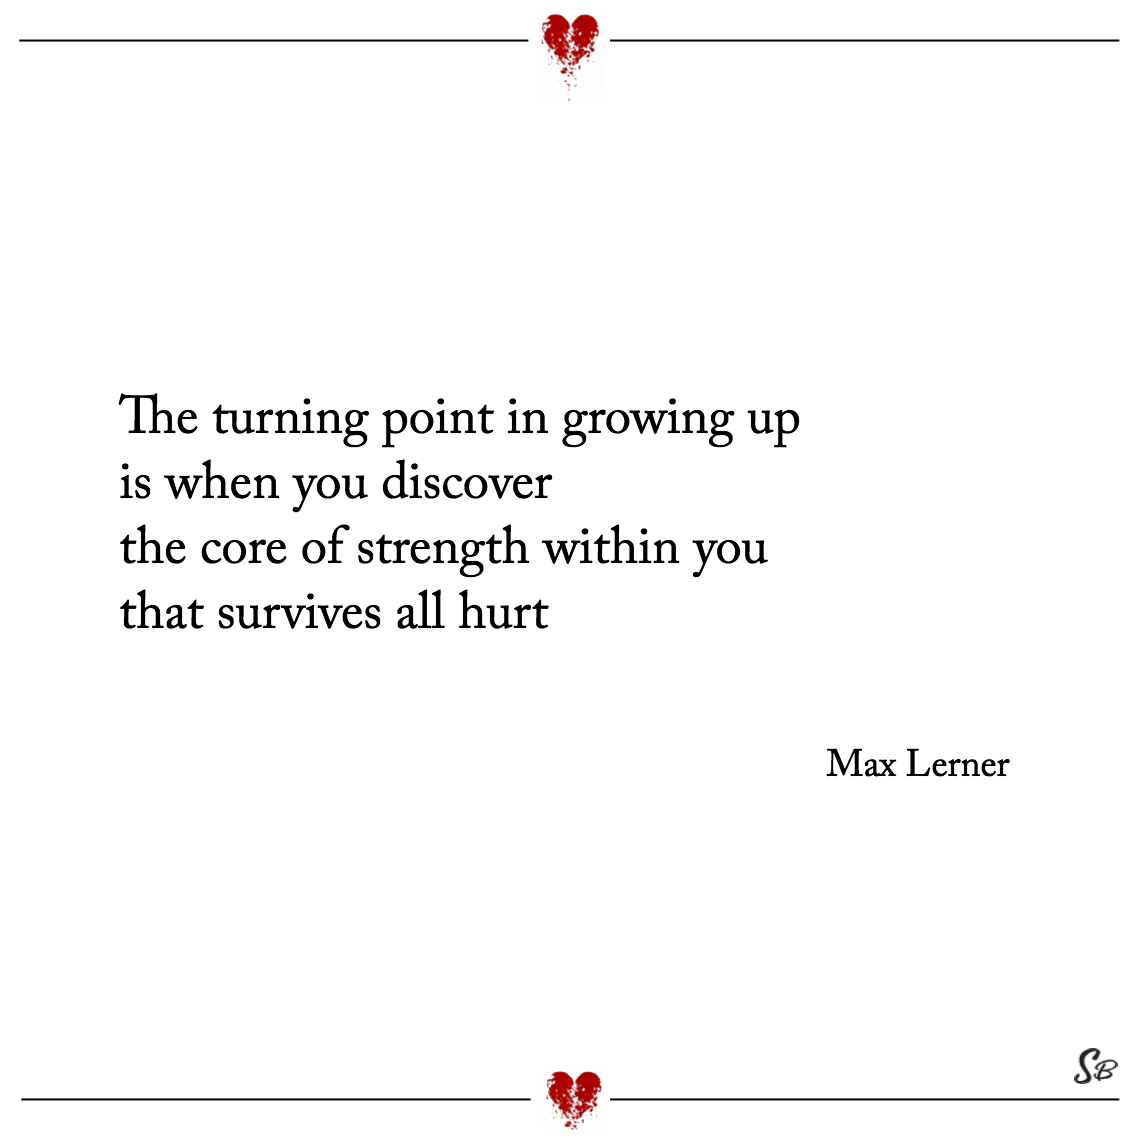 The turning point in growing up is when you discover the core of strength within you that survives all hurt max lerner